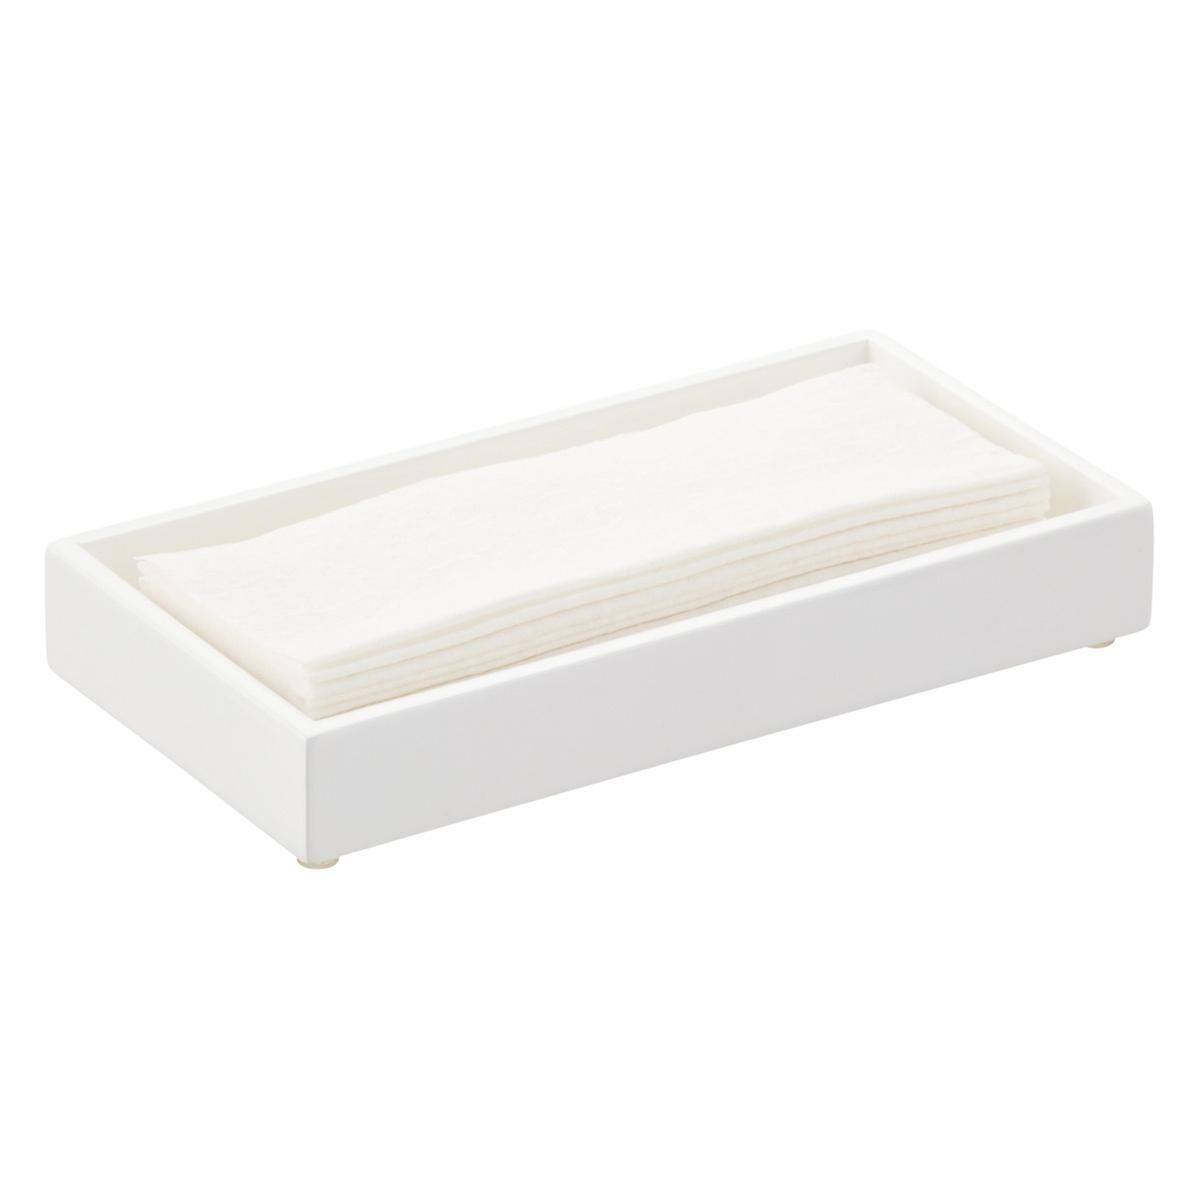 Lacquer Guest Towel Tray Towel Tray Guest Towel Tray Guest Towels